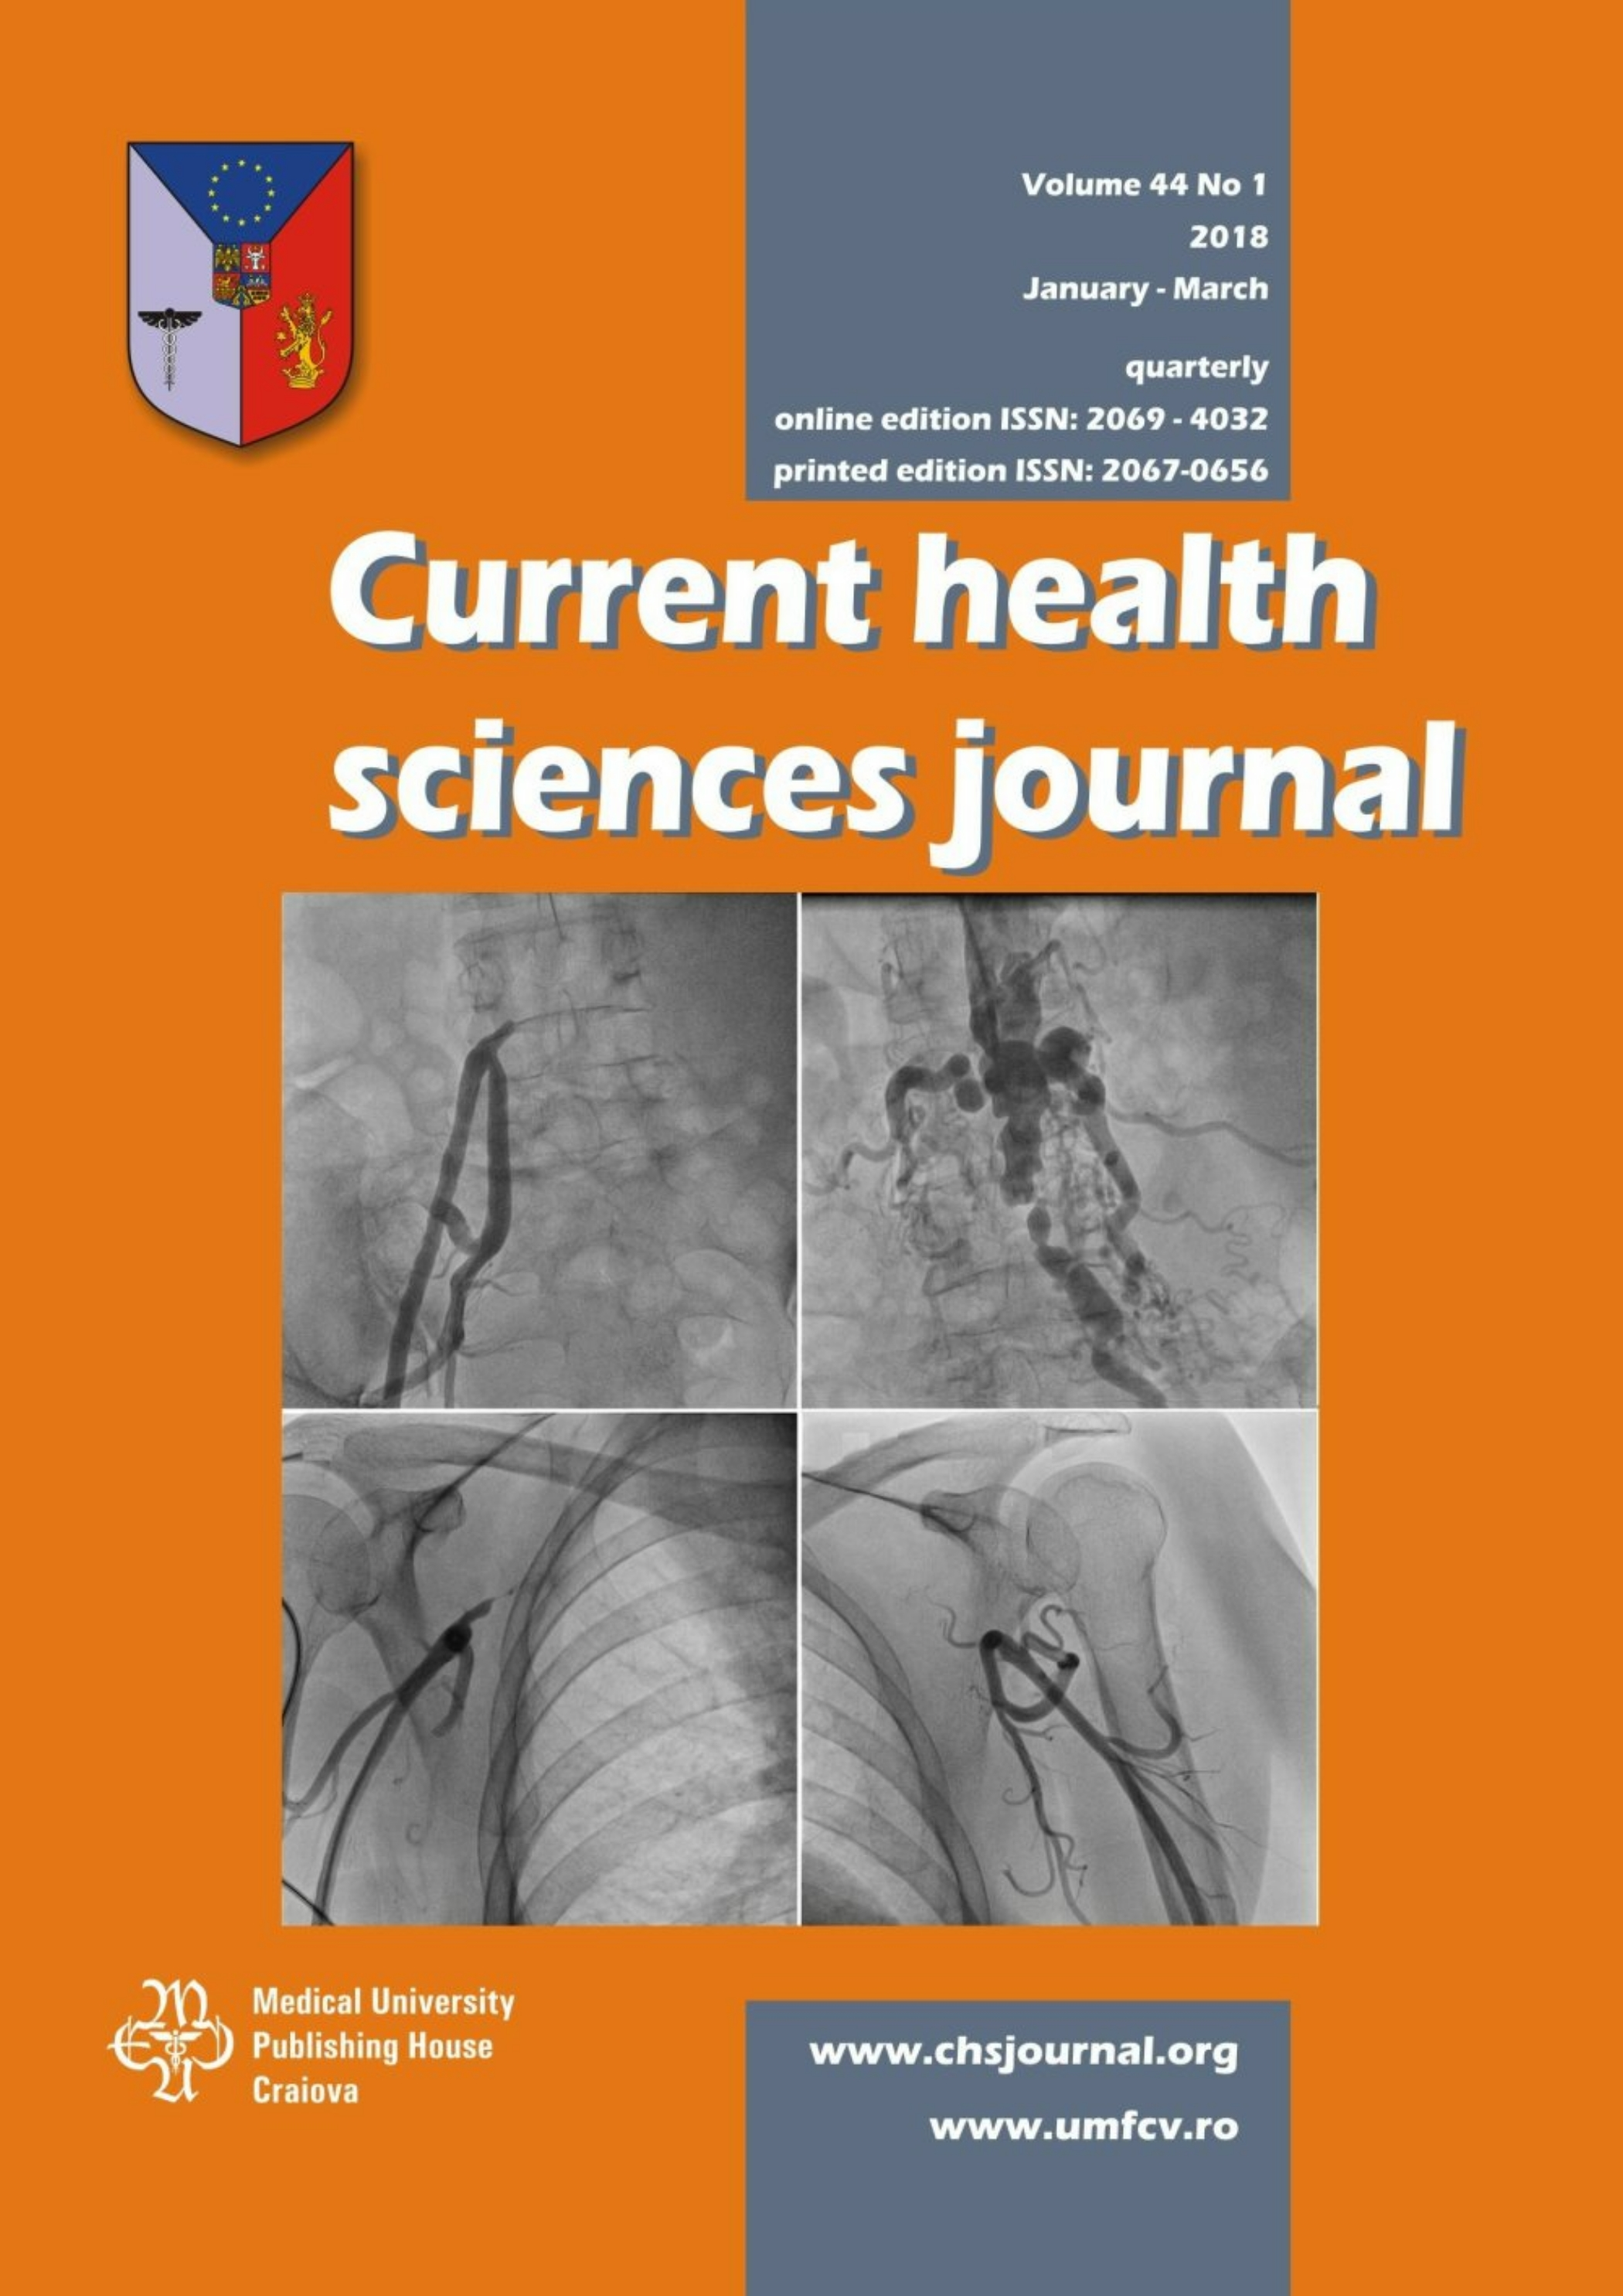 Current Health Sciences Journal, vol. 44 no. 1, 2018